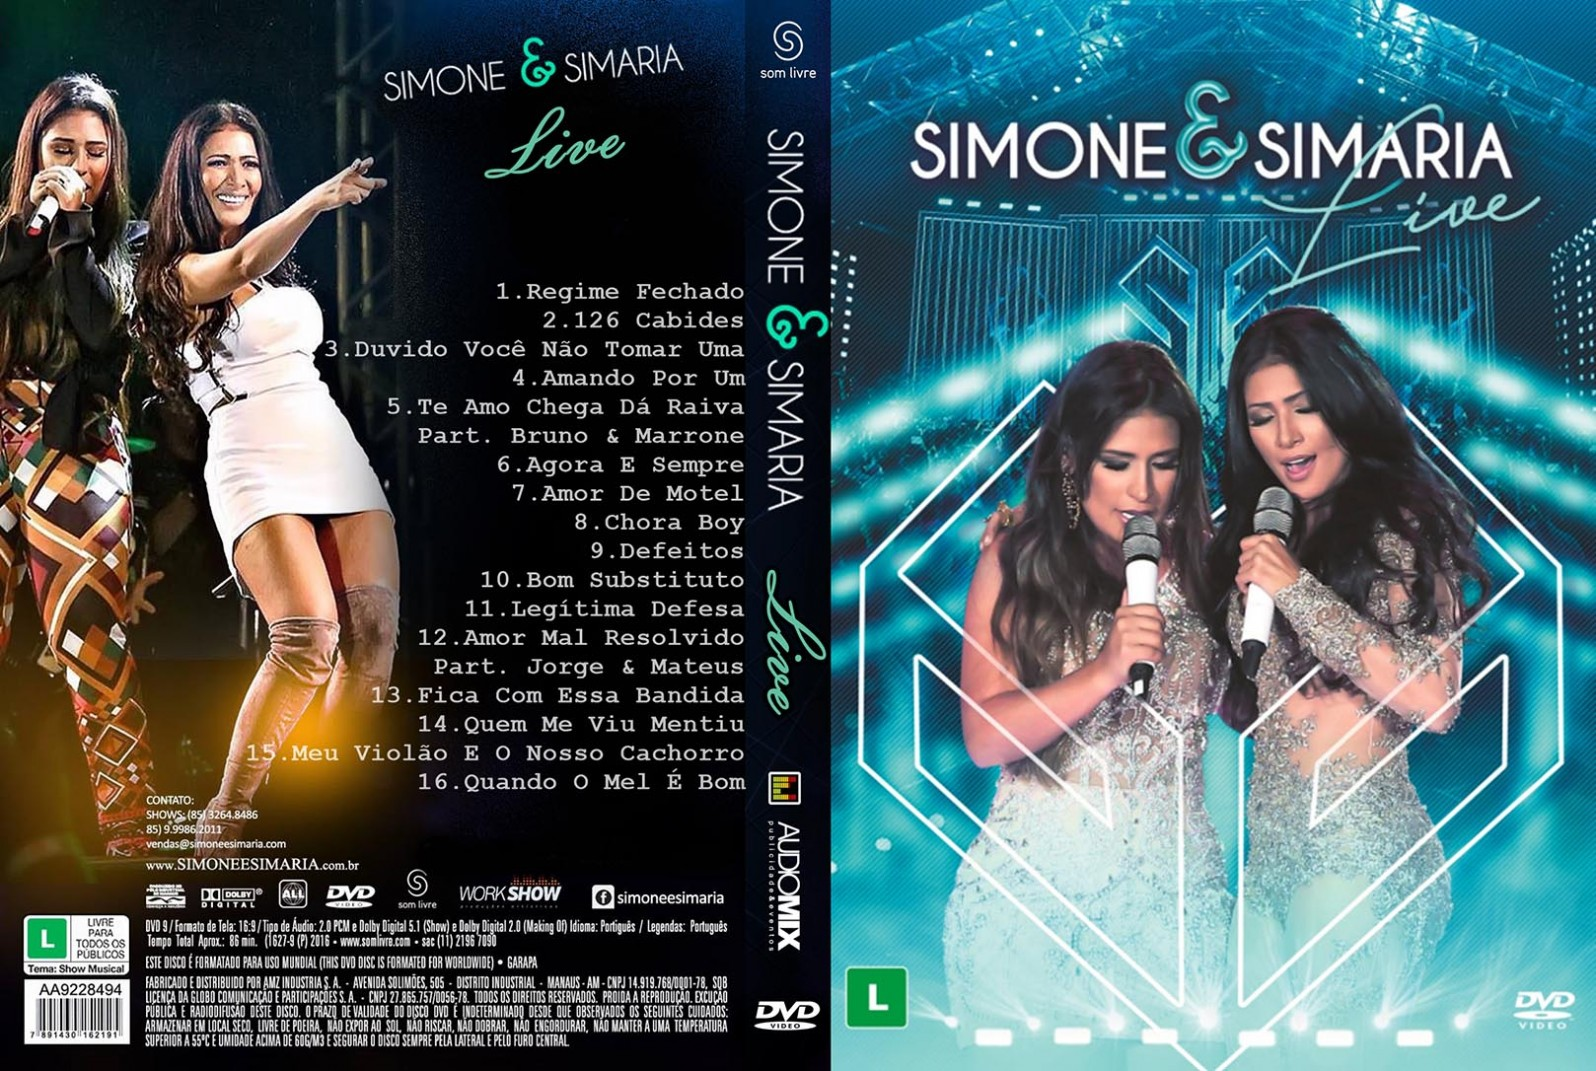 Download Simone & Simaria Live DVD-R Download Simone & Simaria Live DVD-R Simone 2B 2526 2BSimaria 2B  2BLive 2BDVD R 2BXANDAODOWNLOAD